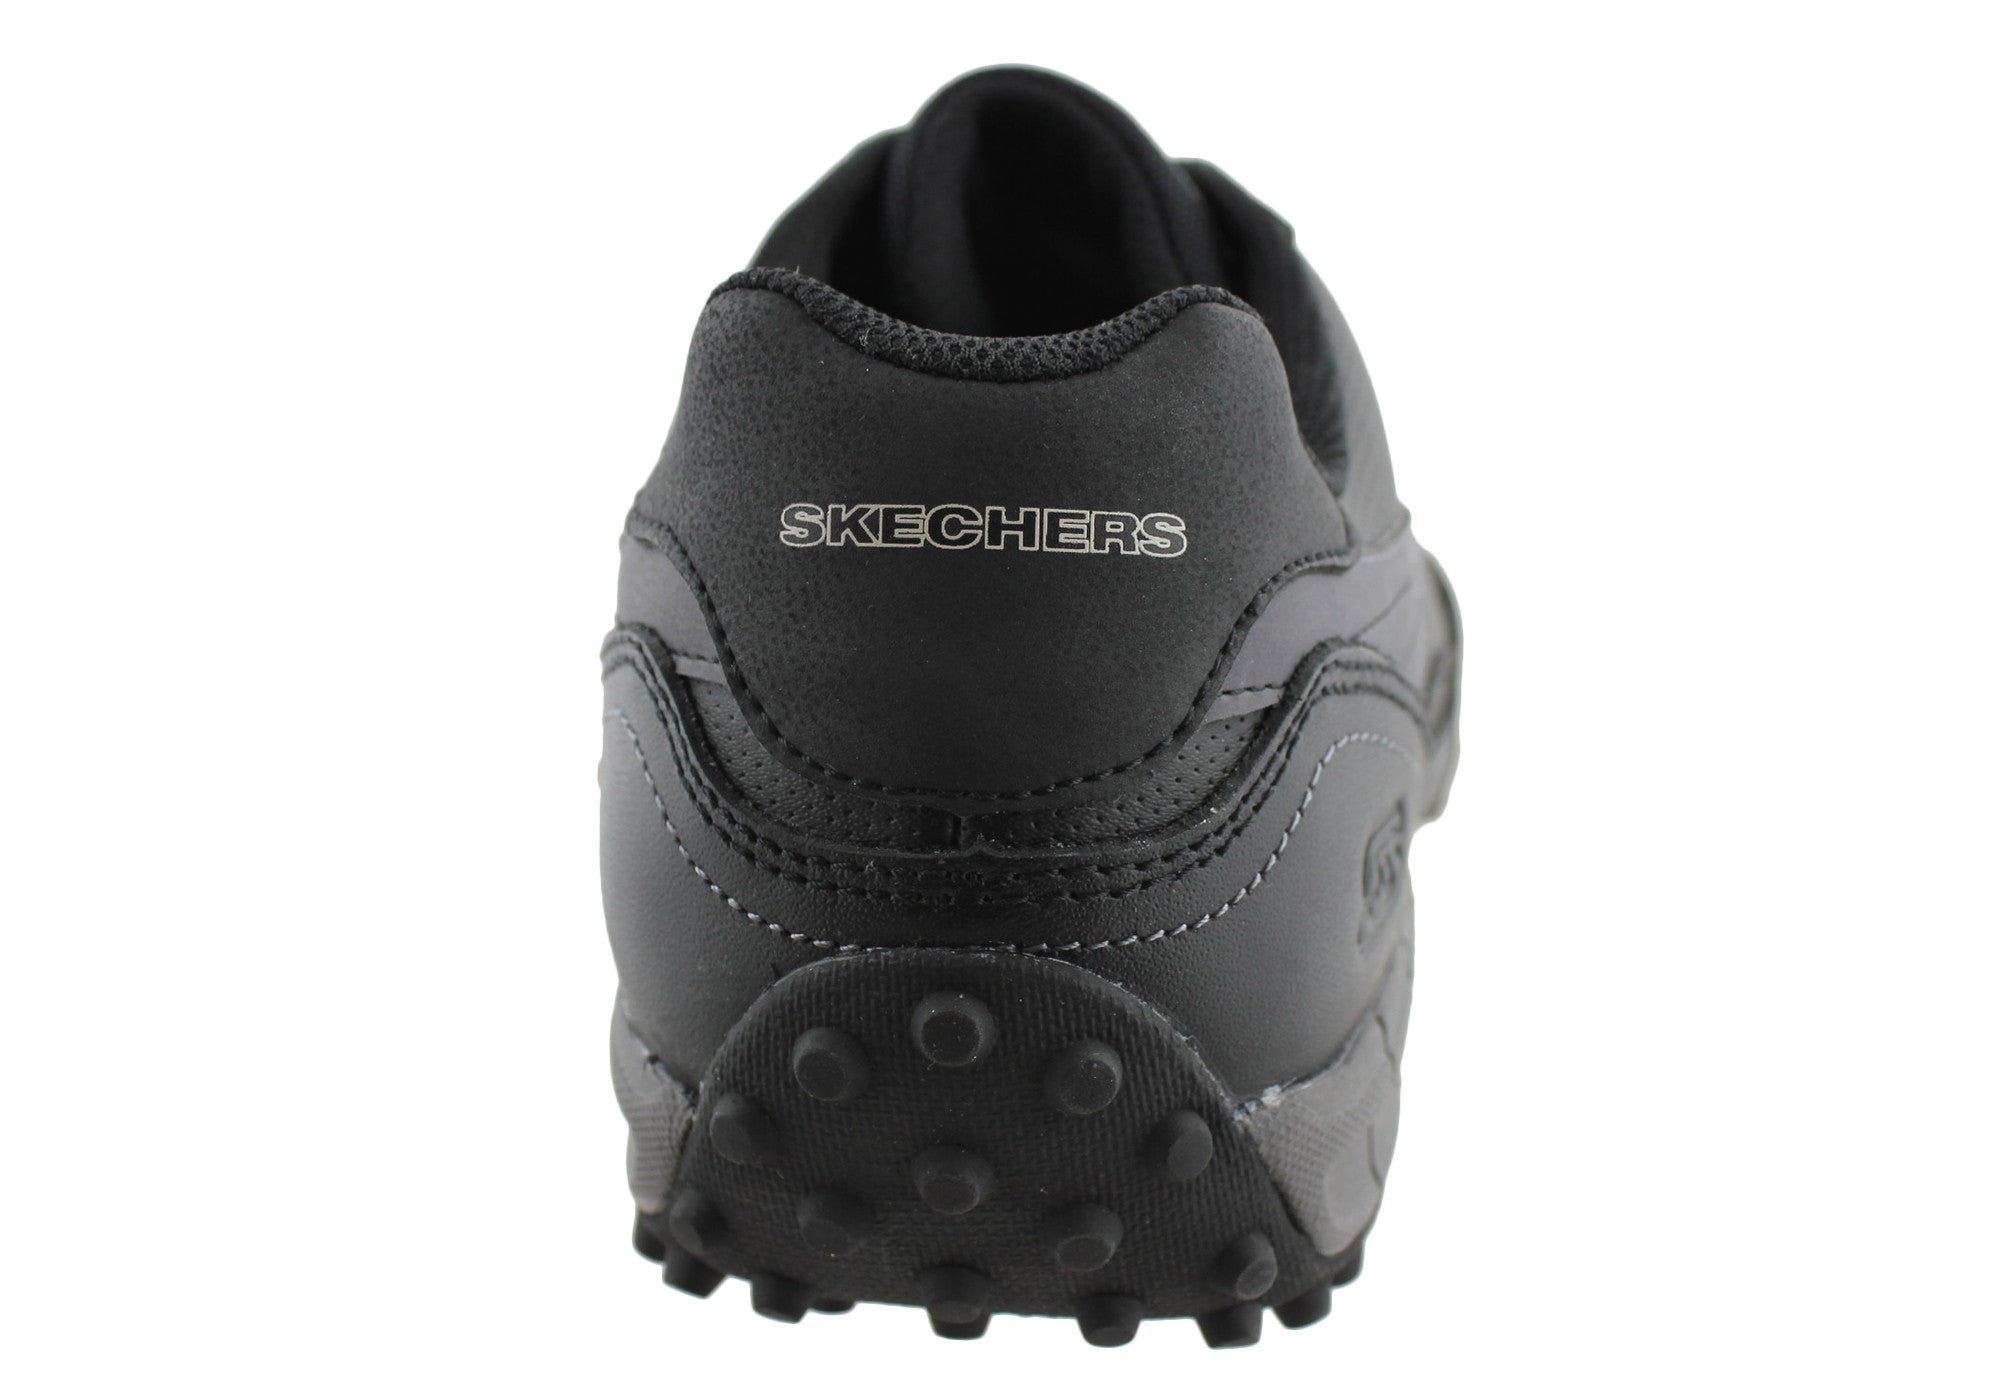 Skechers Floater Down Time Mens Leather Shoes